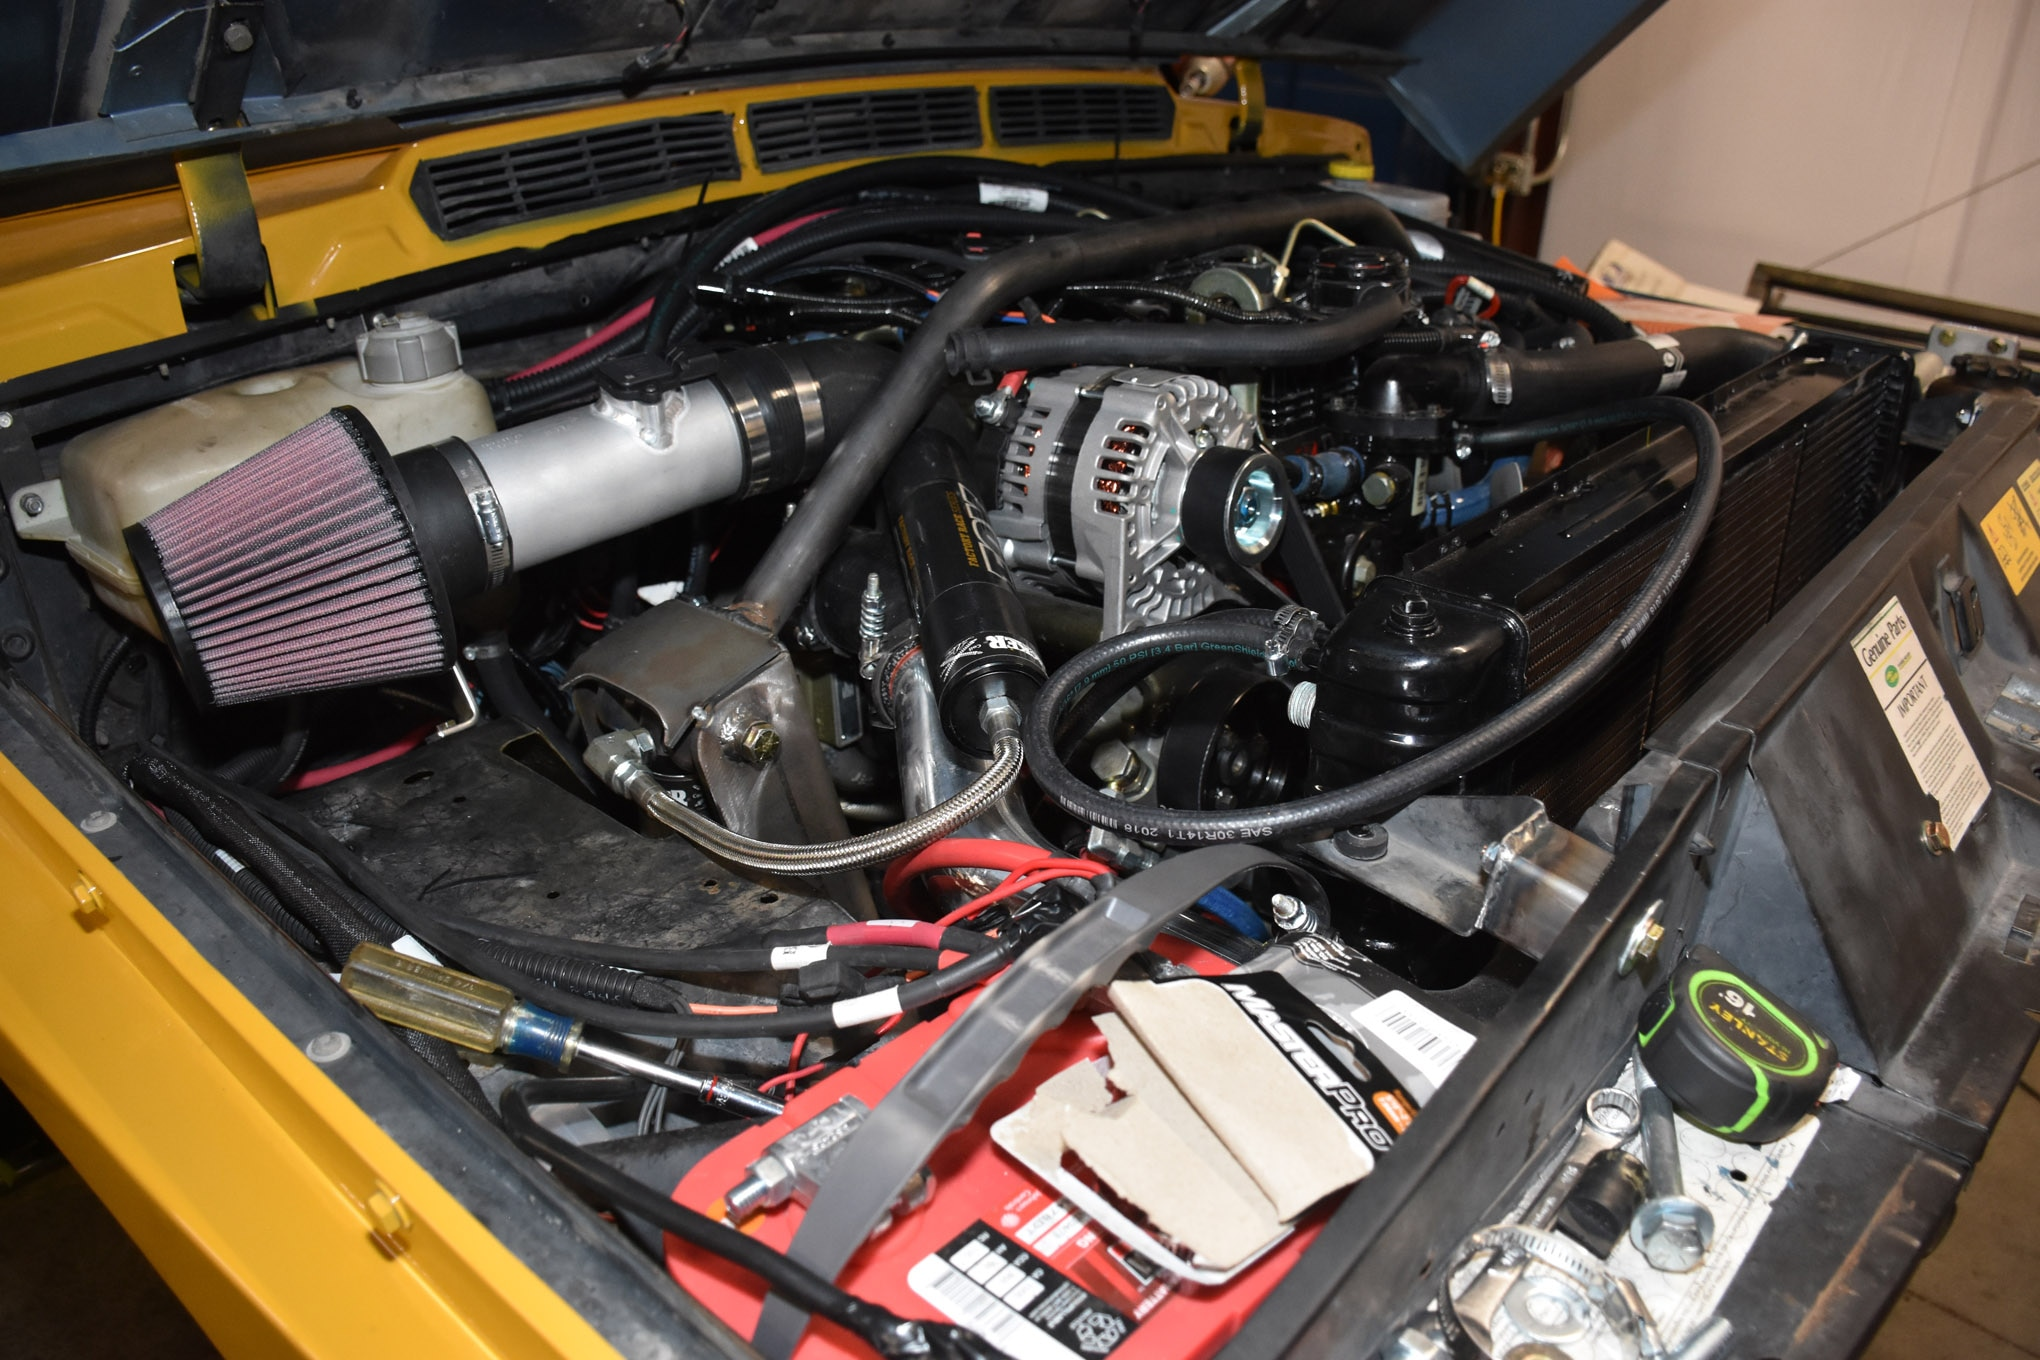 """As the """"Holy poop, we've got to get this thing done!"""" date for UA2018 rapidly approached, lots of things happened. To cool the R2.8, we fitted a factory-replacement Range Rover brass radiator from RockAuto.com. Then we pushed the radiator back as far as possible, leaving clearance for a 17-inch reverse-rotation steel Silver Race Fan from Flex-a-Lite and using an adapter to mount it to the R2.8's water pump from our friend Marc Terrien. To move the radiator, we drilled new holes for the radiator about 3 inches back from the factory position and built extensions for the upper radiator mounts. These radiators are held in place with two stems (like fingers) that point down to fit in rubber grommets that sink into the front crossmember. Up top are some fingers (pointing up) that are grabbed by brackets isolating the radiator with some rubber grommets. Pretty ingenious, Brits!"""